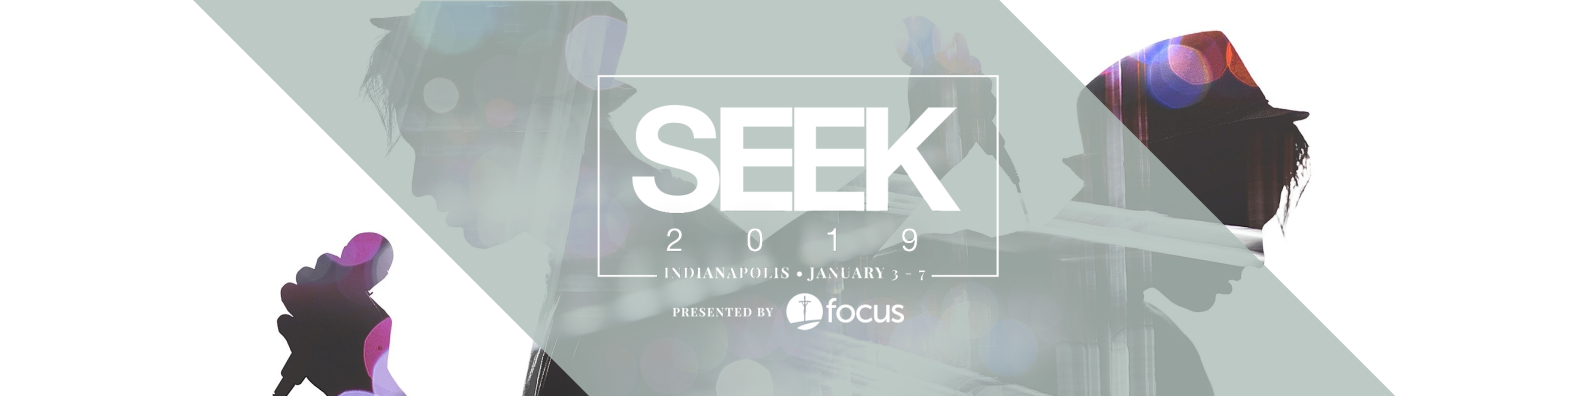 Seek 2019 presented by FOCUS, The Awaken Competition